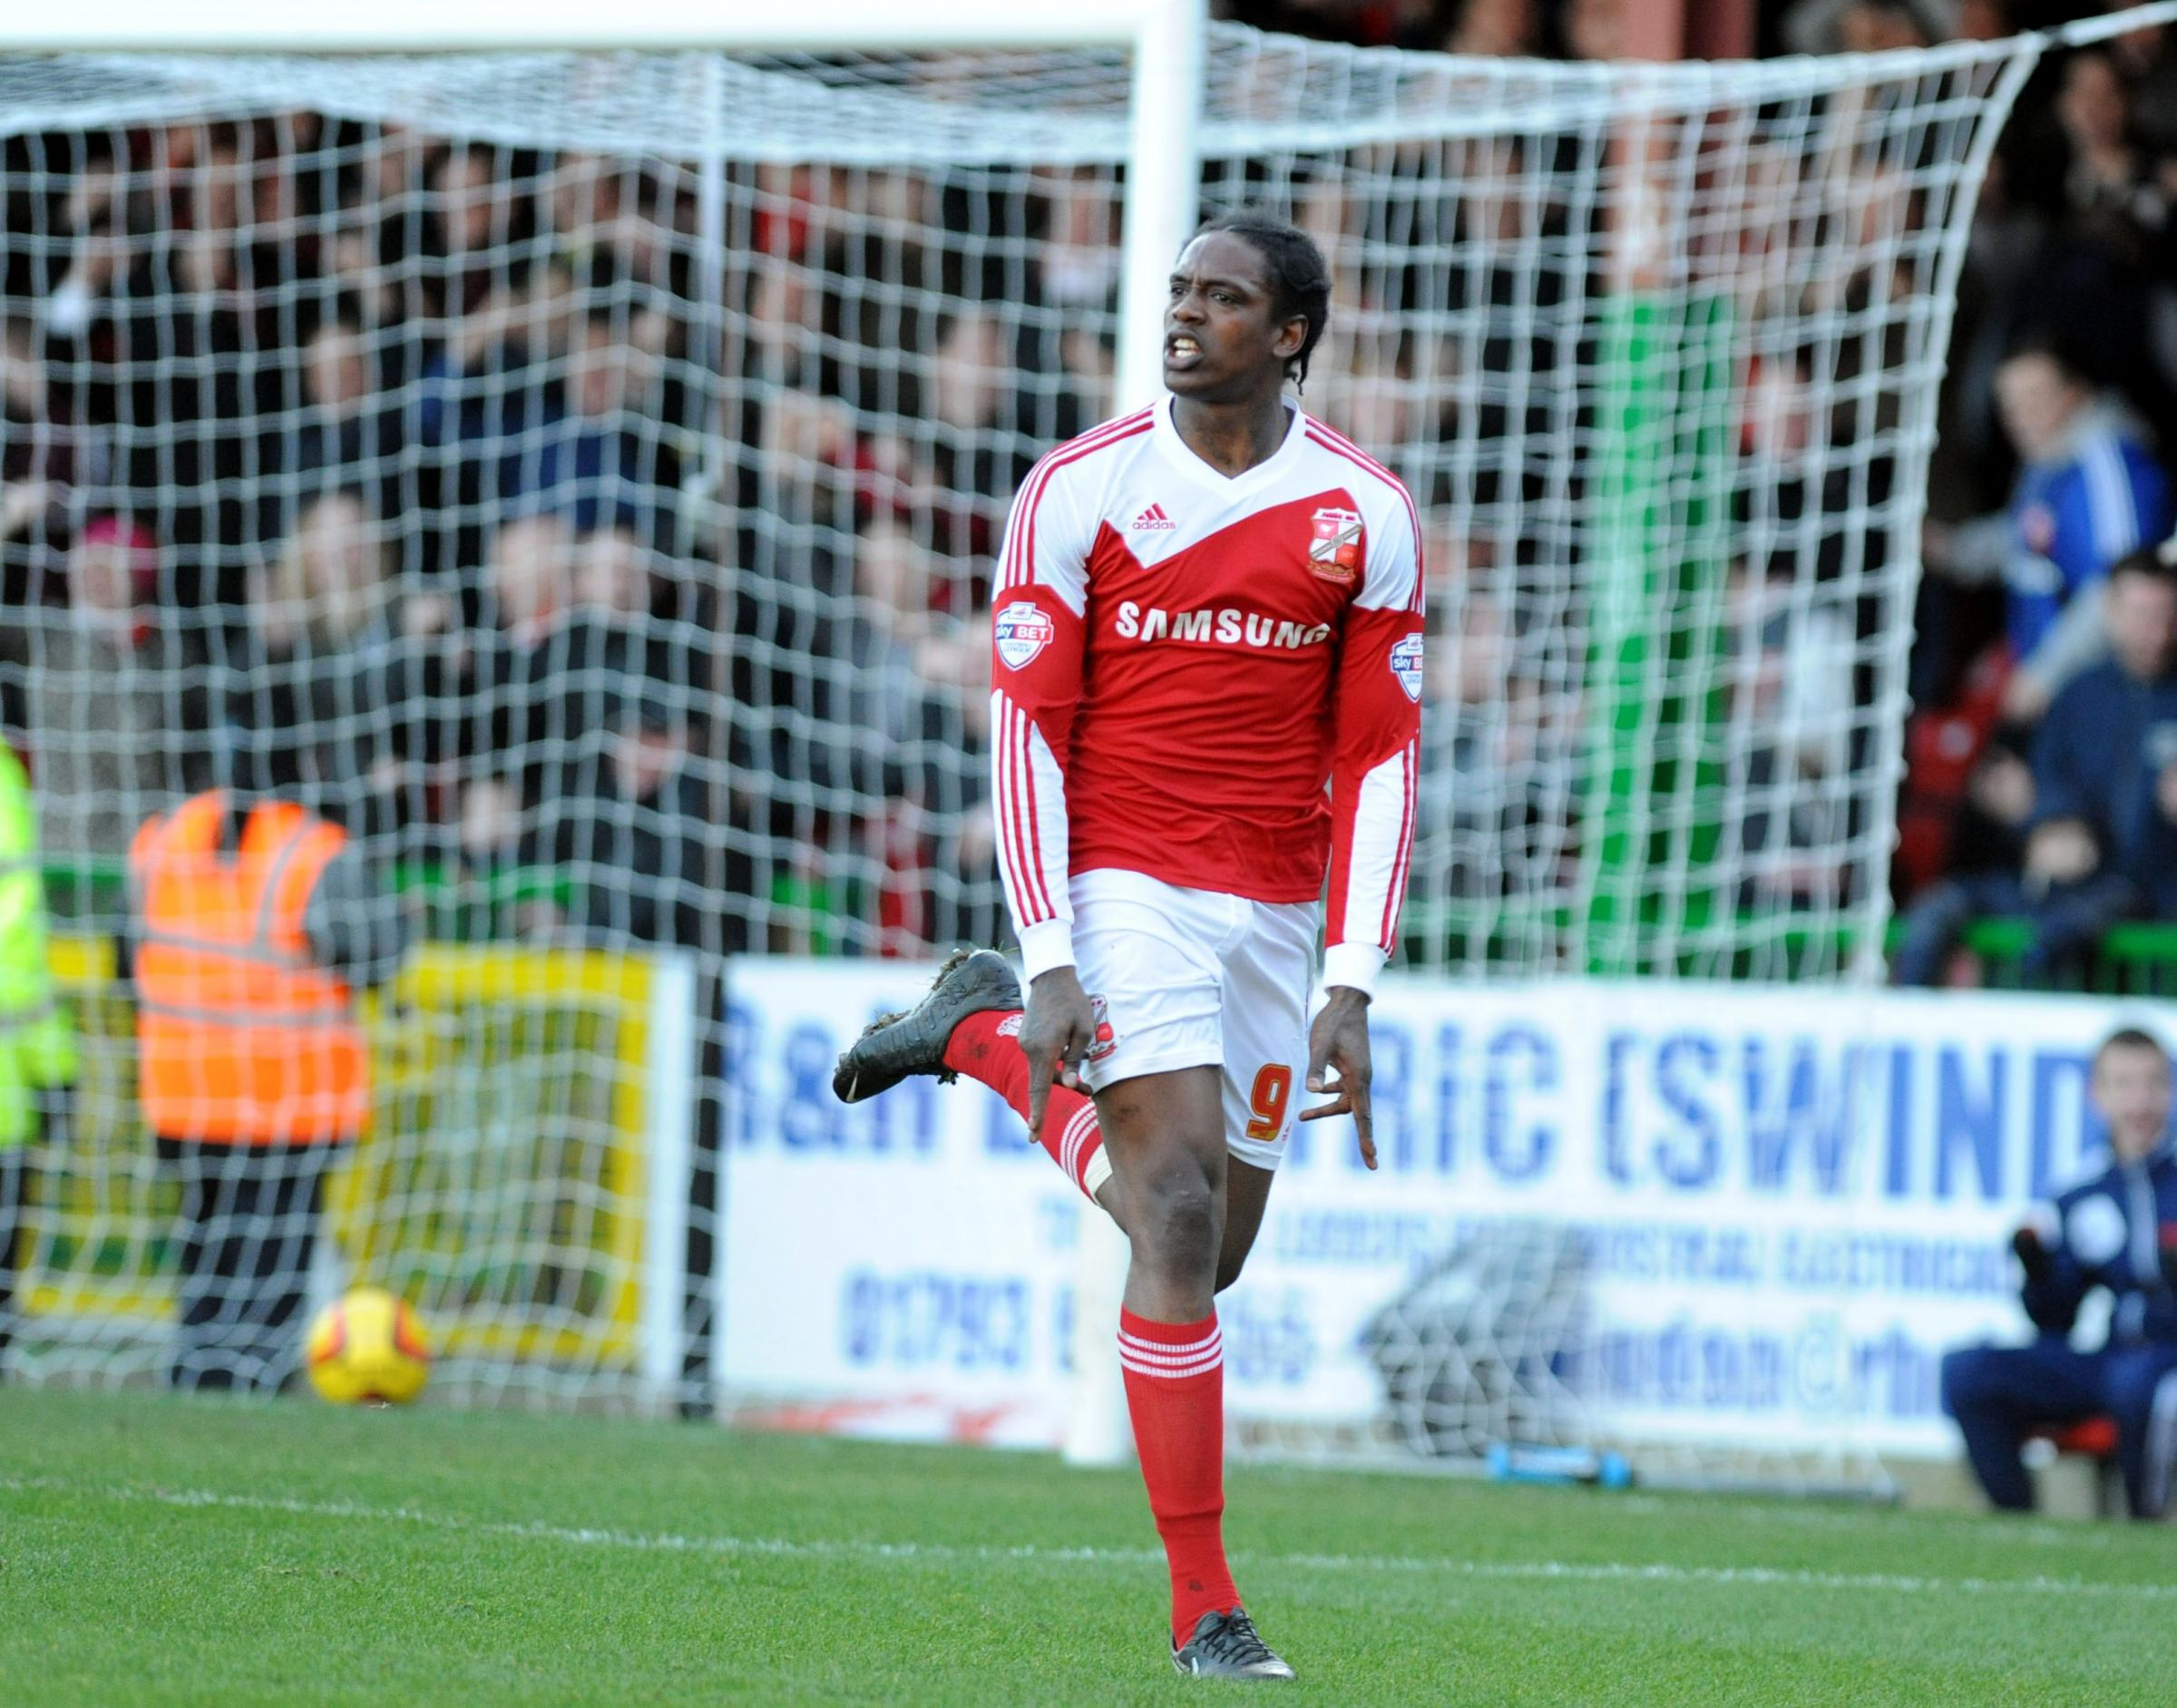 Swindon Town striker Nile Ranger has been ruled out for the rest of the season